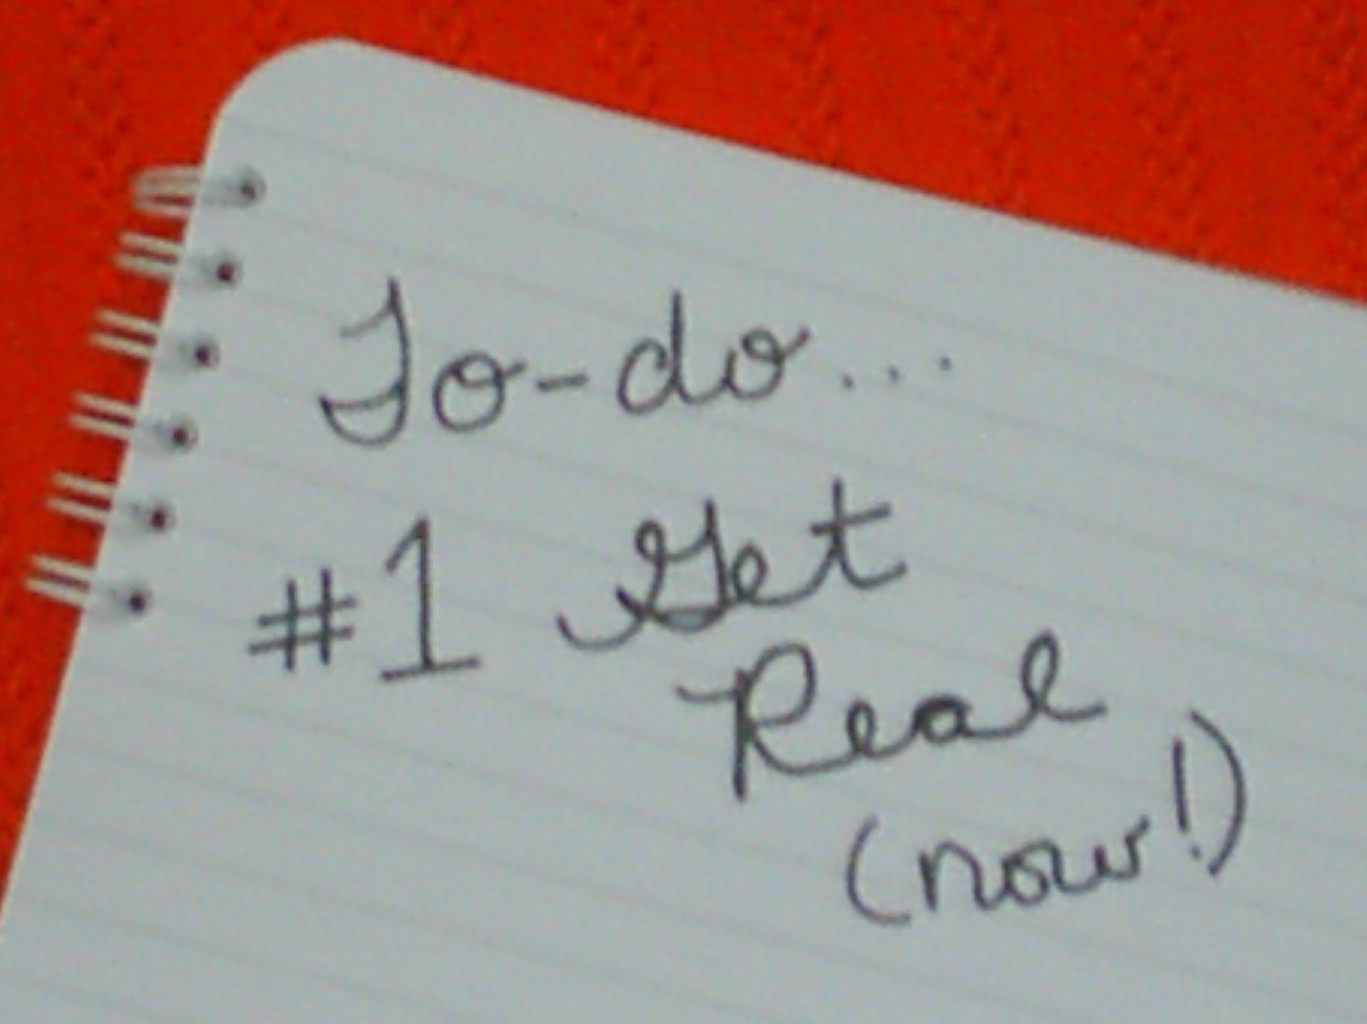 #1 on your to-do list...Get Real!